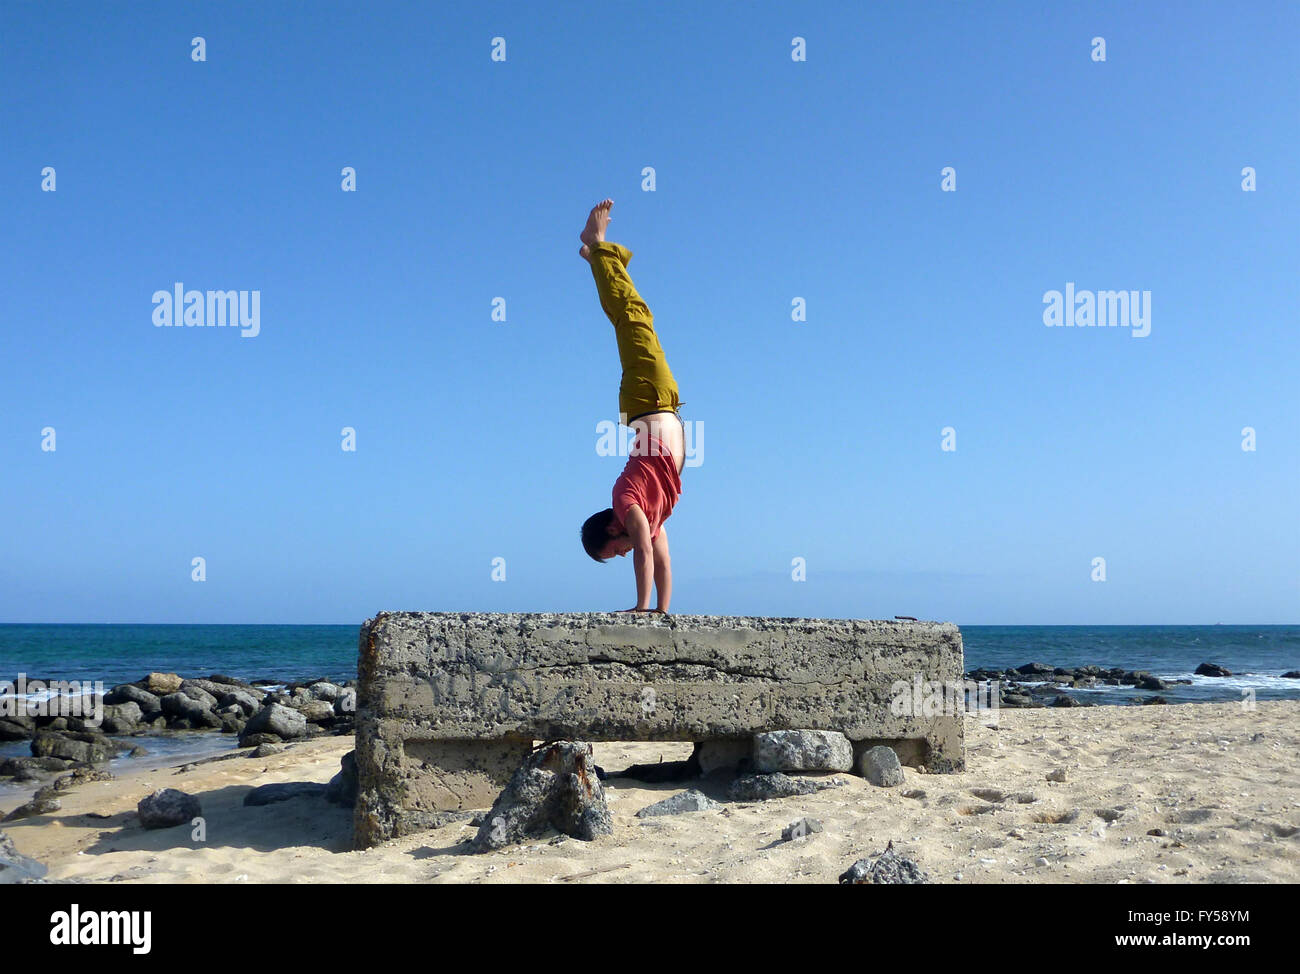 Man wearing a red t-shirt, long olive pants, and bare feet Handstands on top a old historic pillbox on the beach - Stock Image